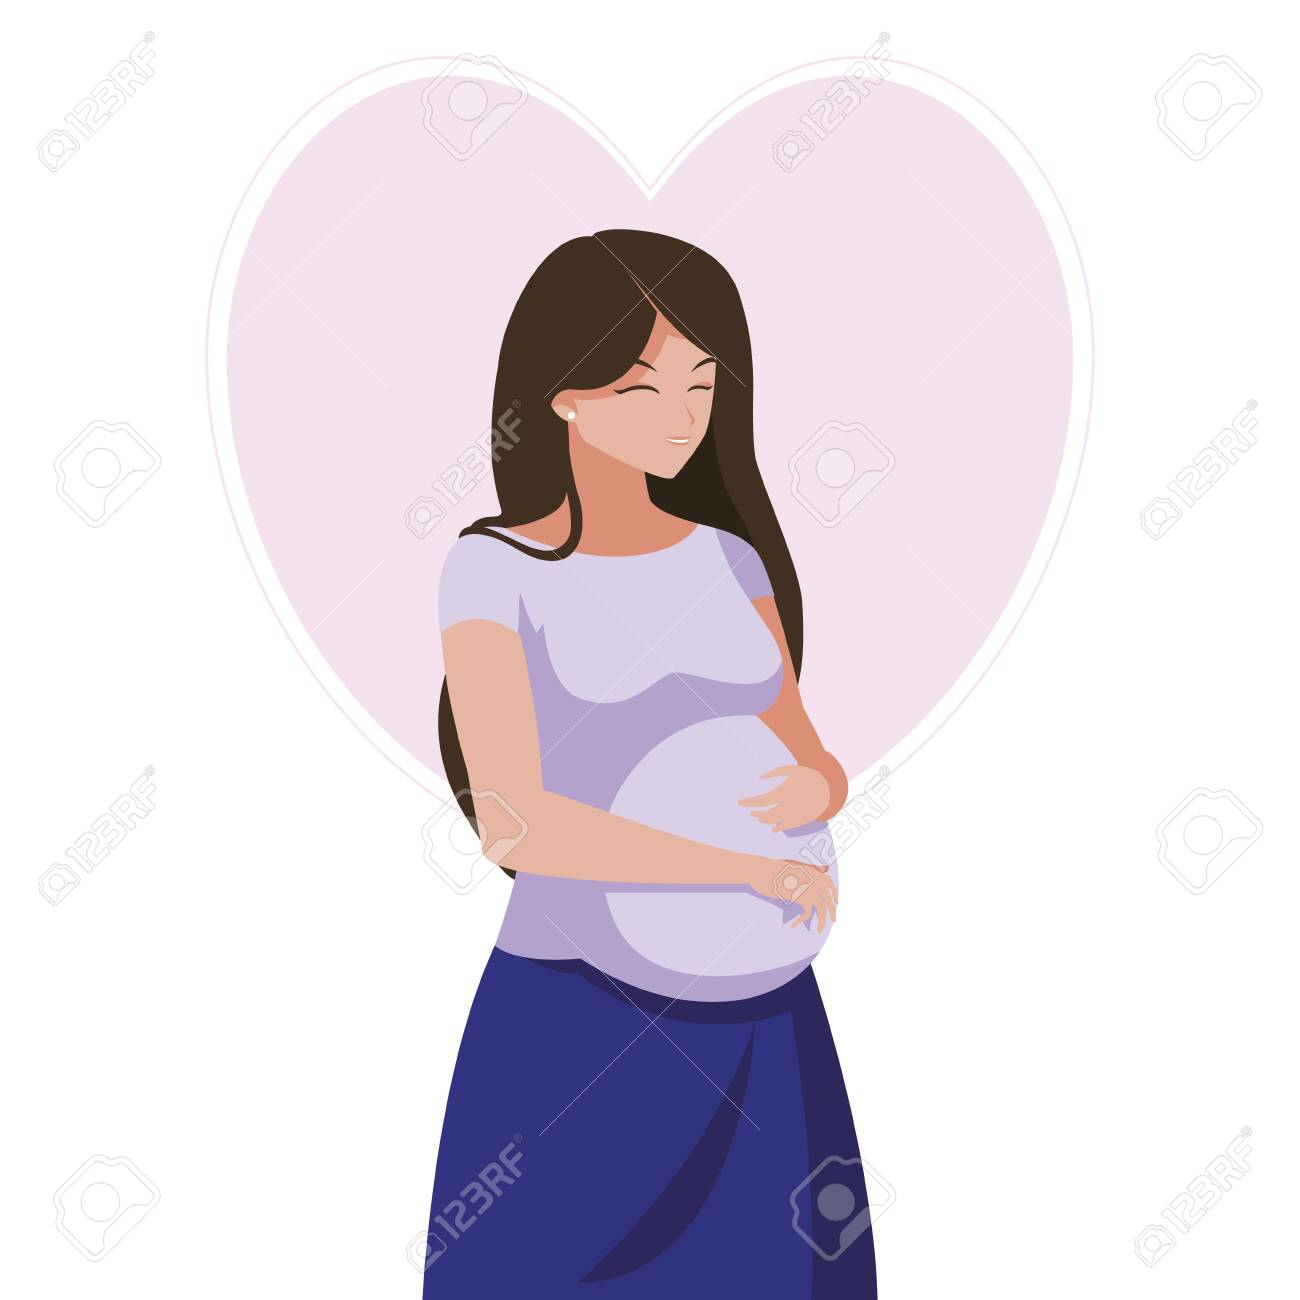 beautiful pregnancy woman in heart character vector illustration design - 132650682